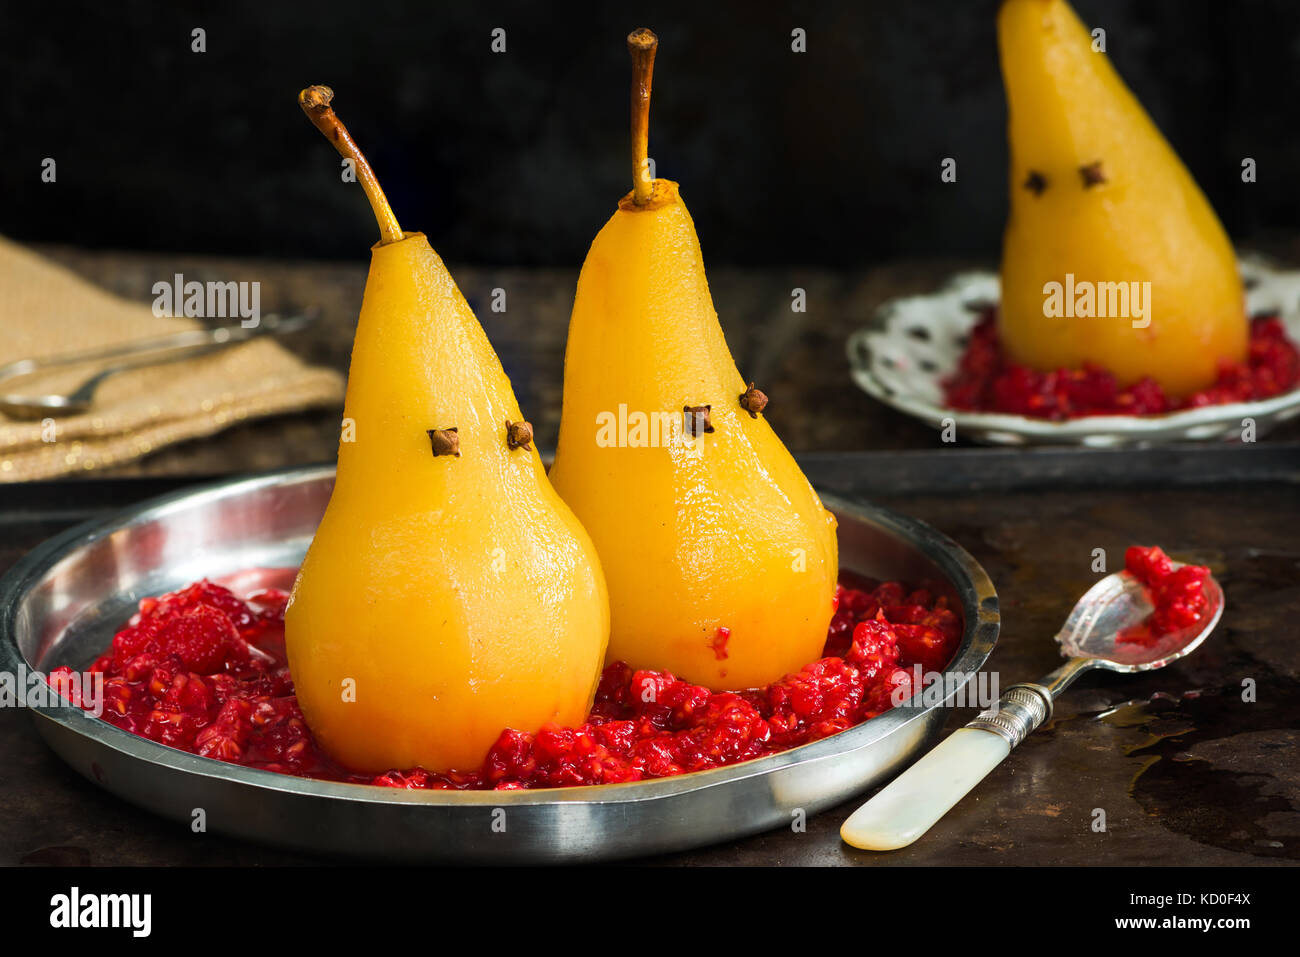 Pears poached in sweet syrup on crushed raspberries, presented as ghosts. Halloween food idea. - Stock Image